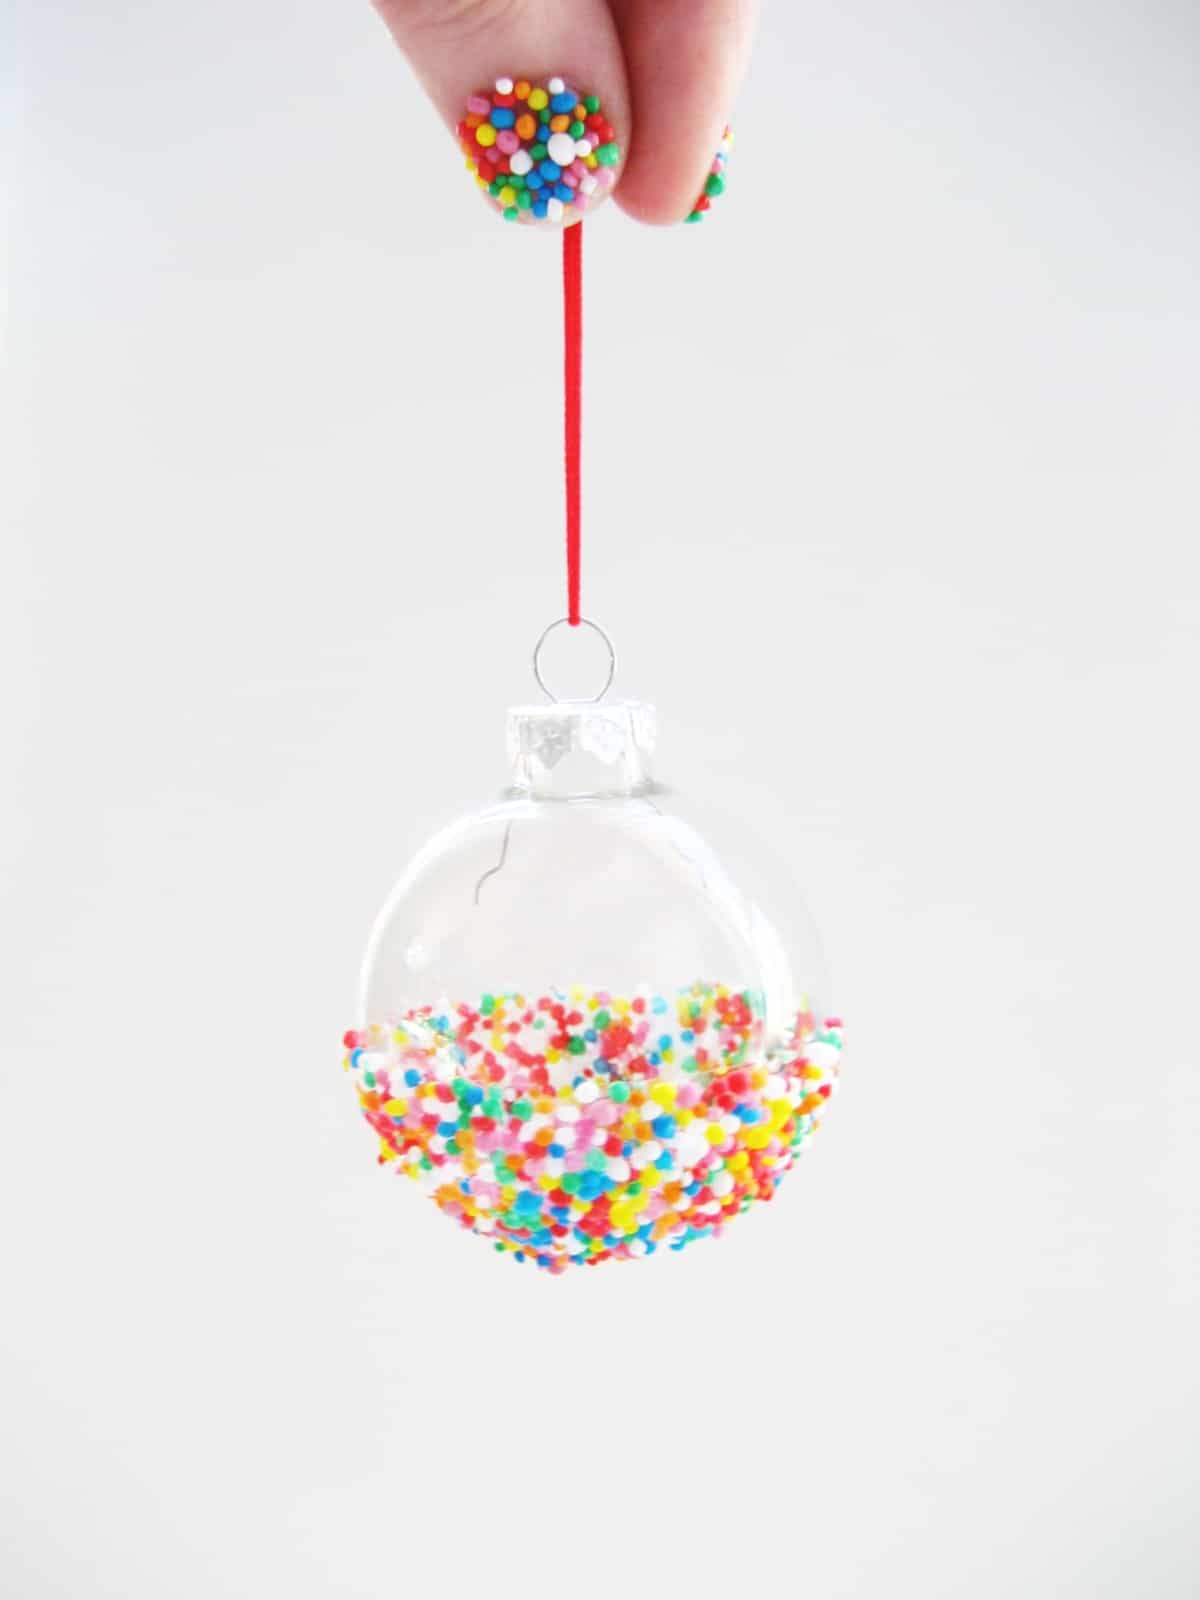 Diy how to make sprinkles ornaments 1